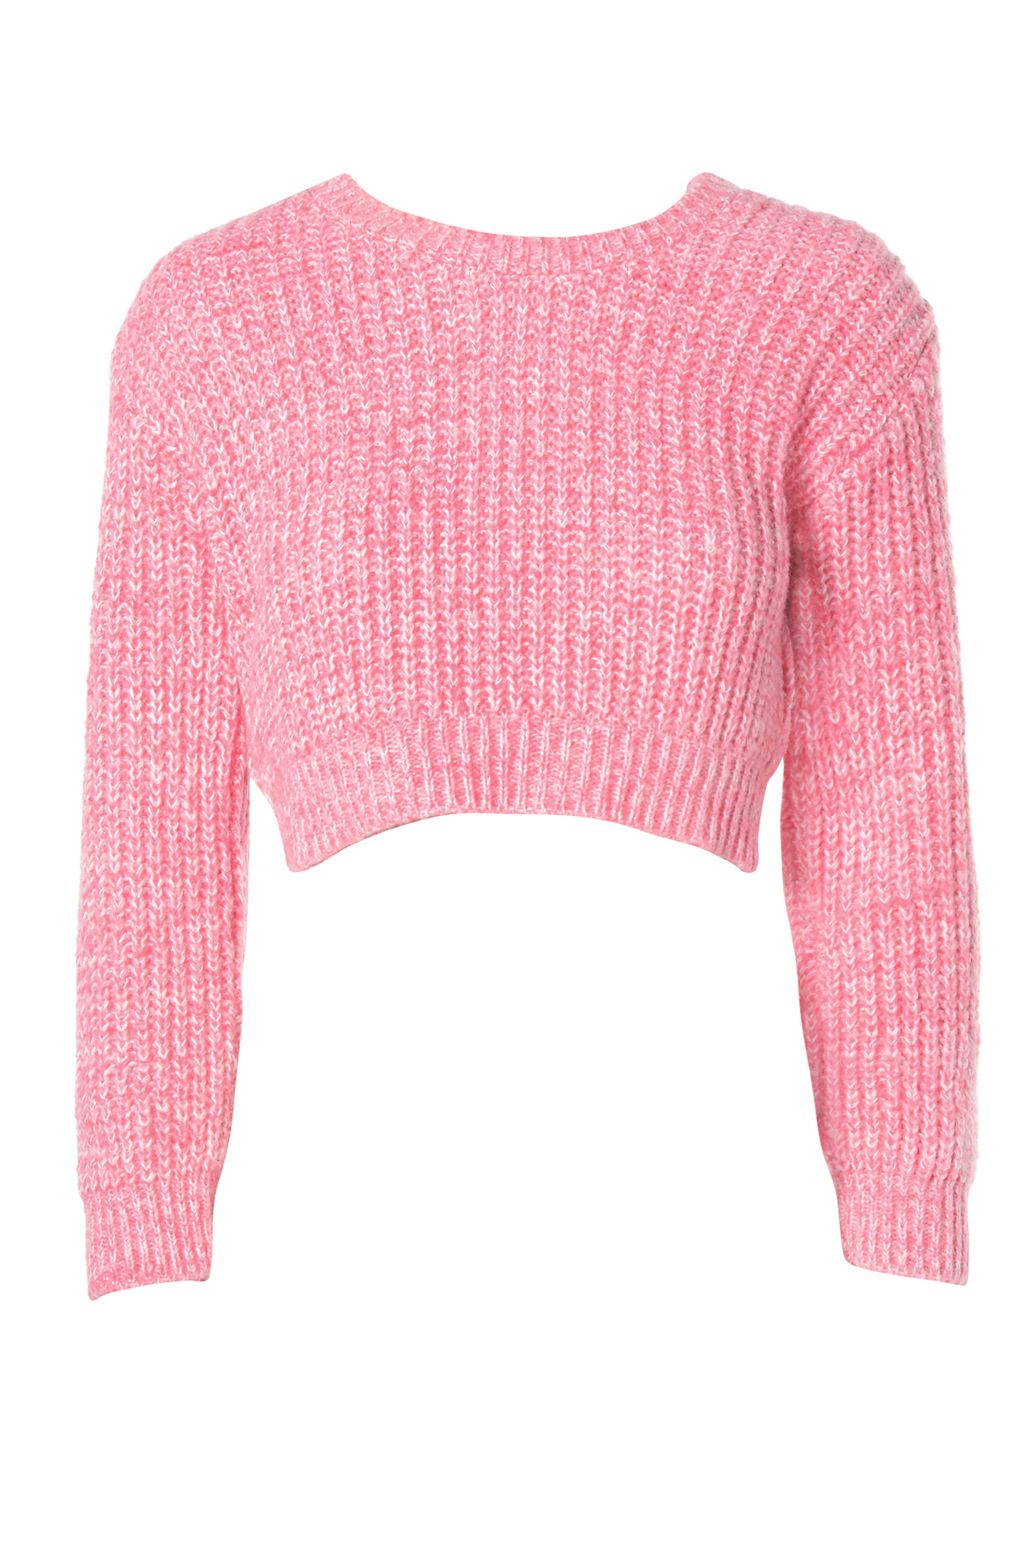 Pink Flecked Knit Cropped Jumper Price: £17.99 | Dresses ...